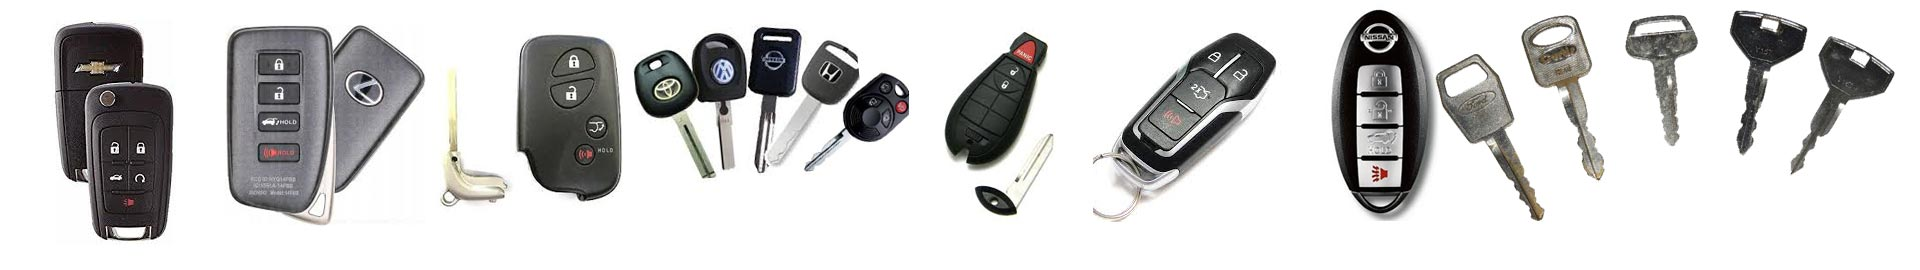 car keys, fobs and remotes